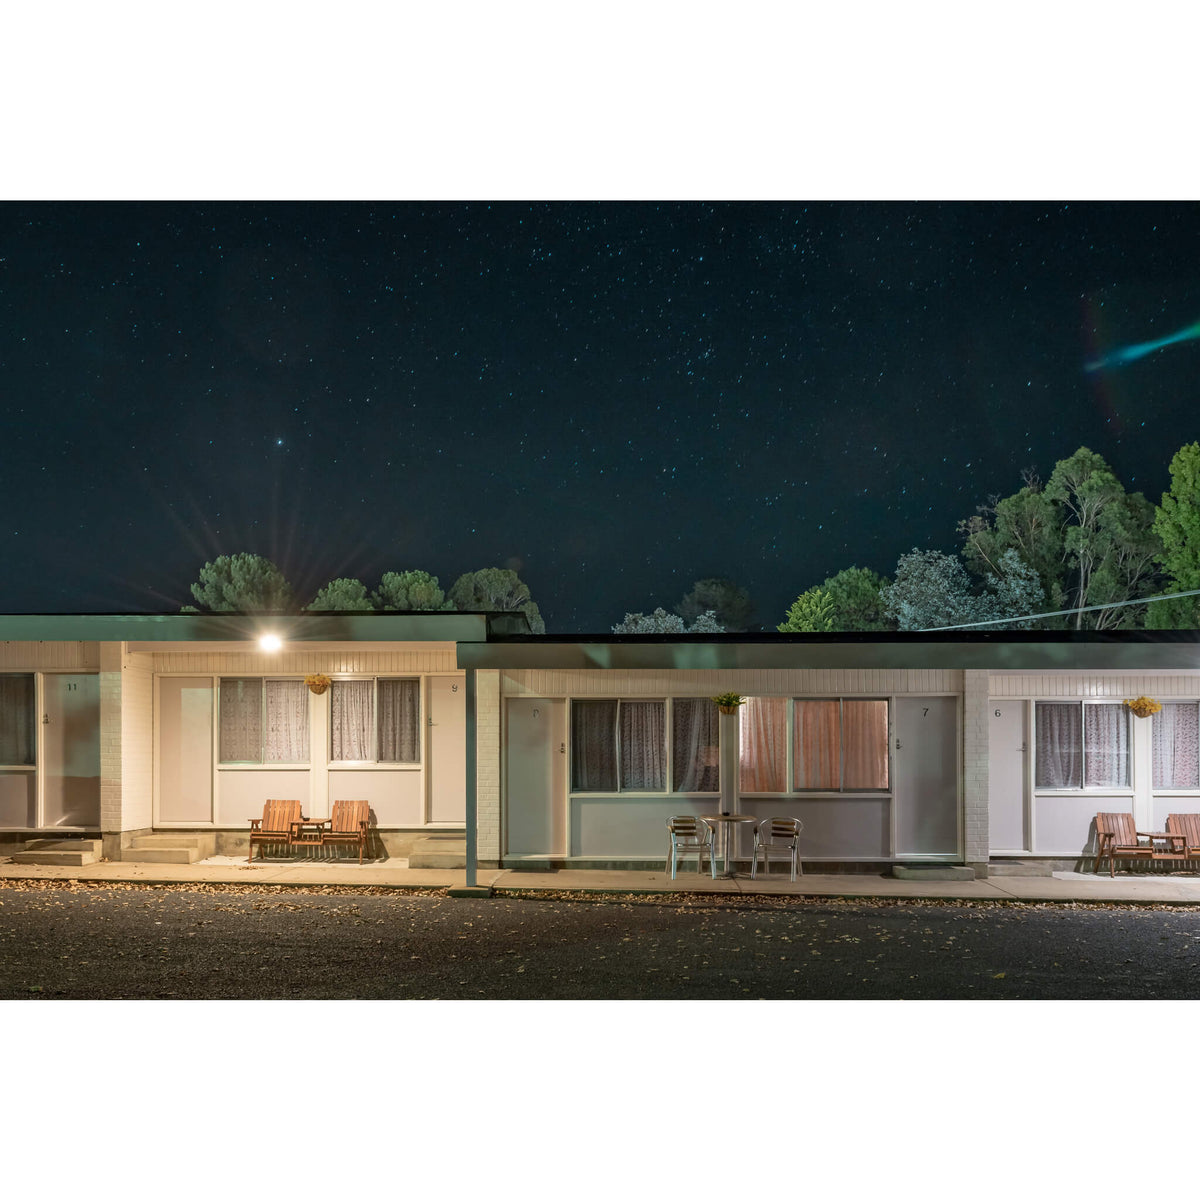 Lithgow Valley Motel, Bowenfels | Hotel Motel 101 Fine Art Print - Lost Collective Shop